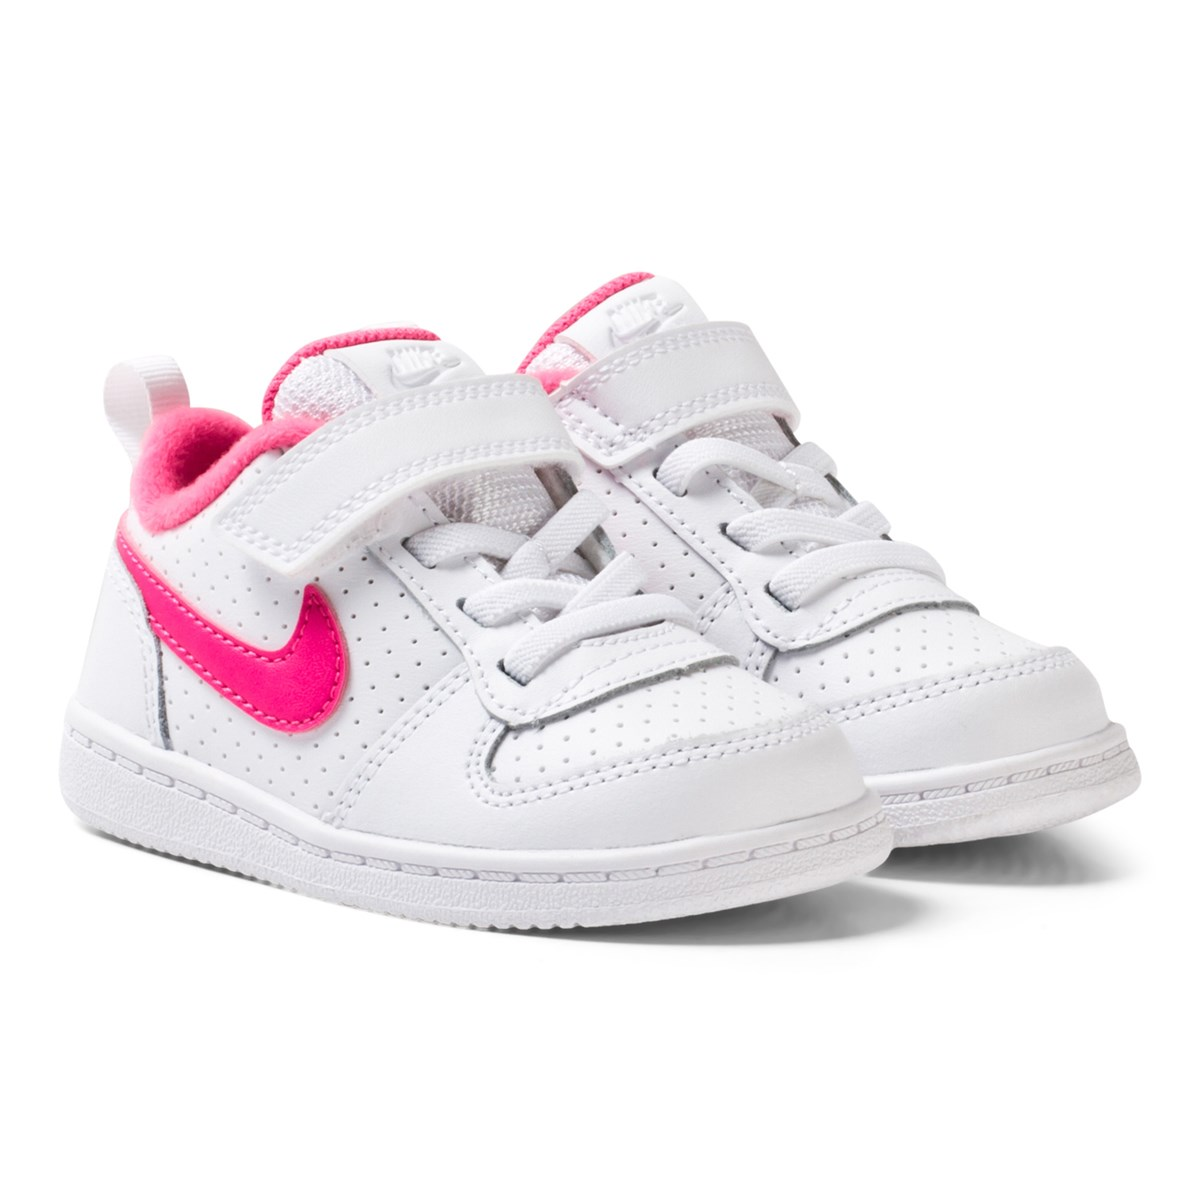 NIKE - White and Pink Court Borough Low Infants Sneakers ...